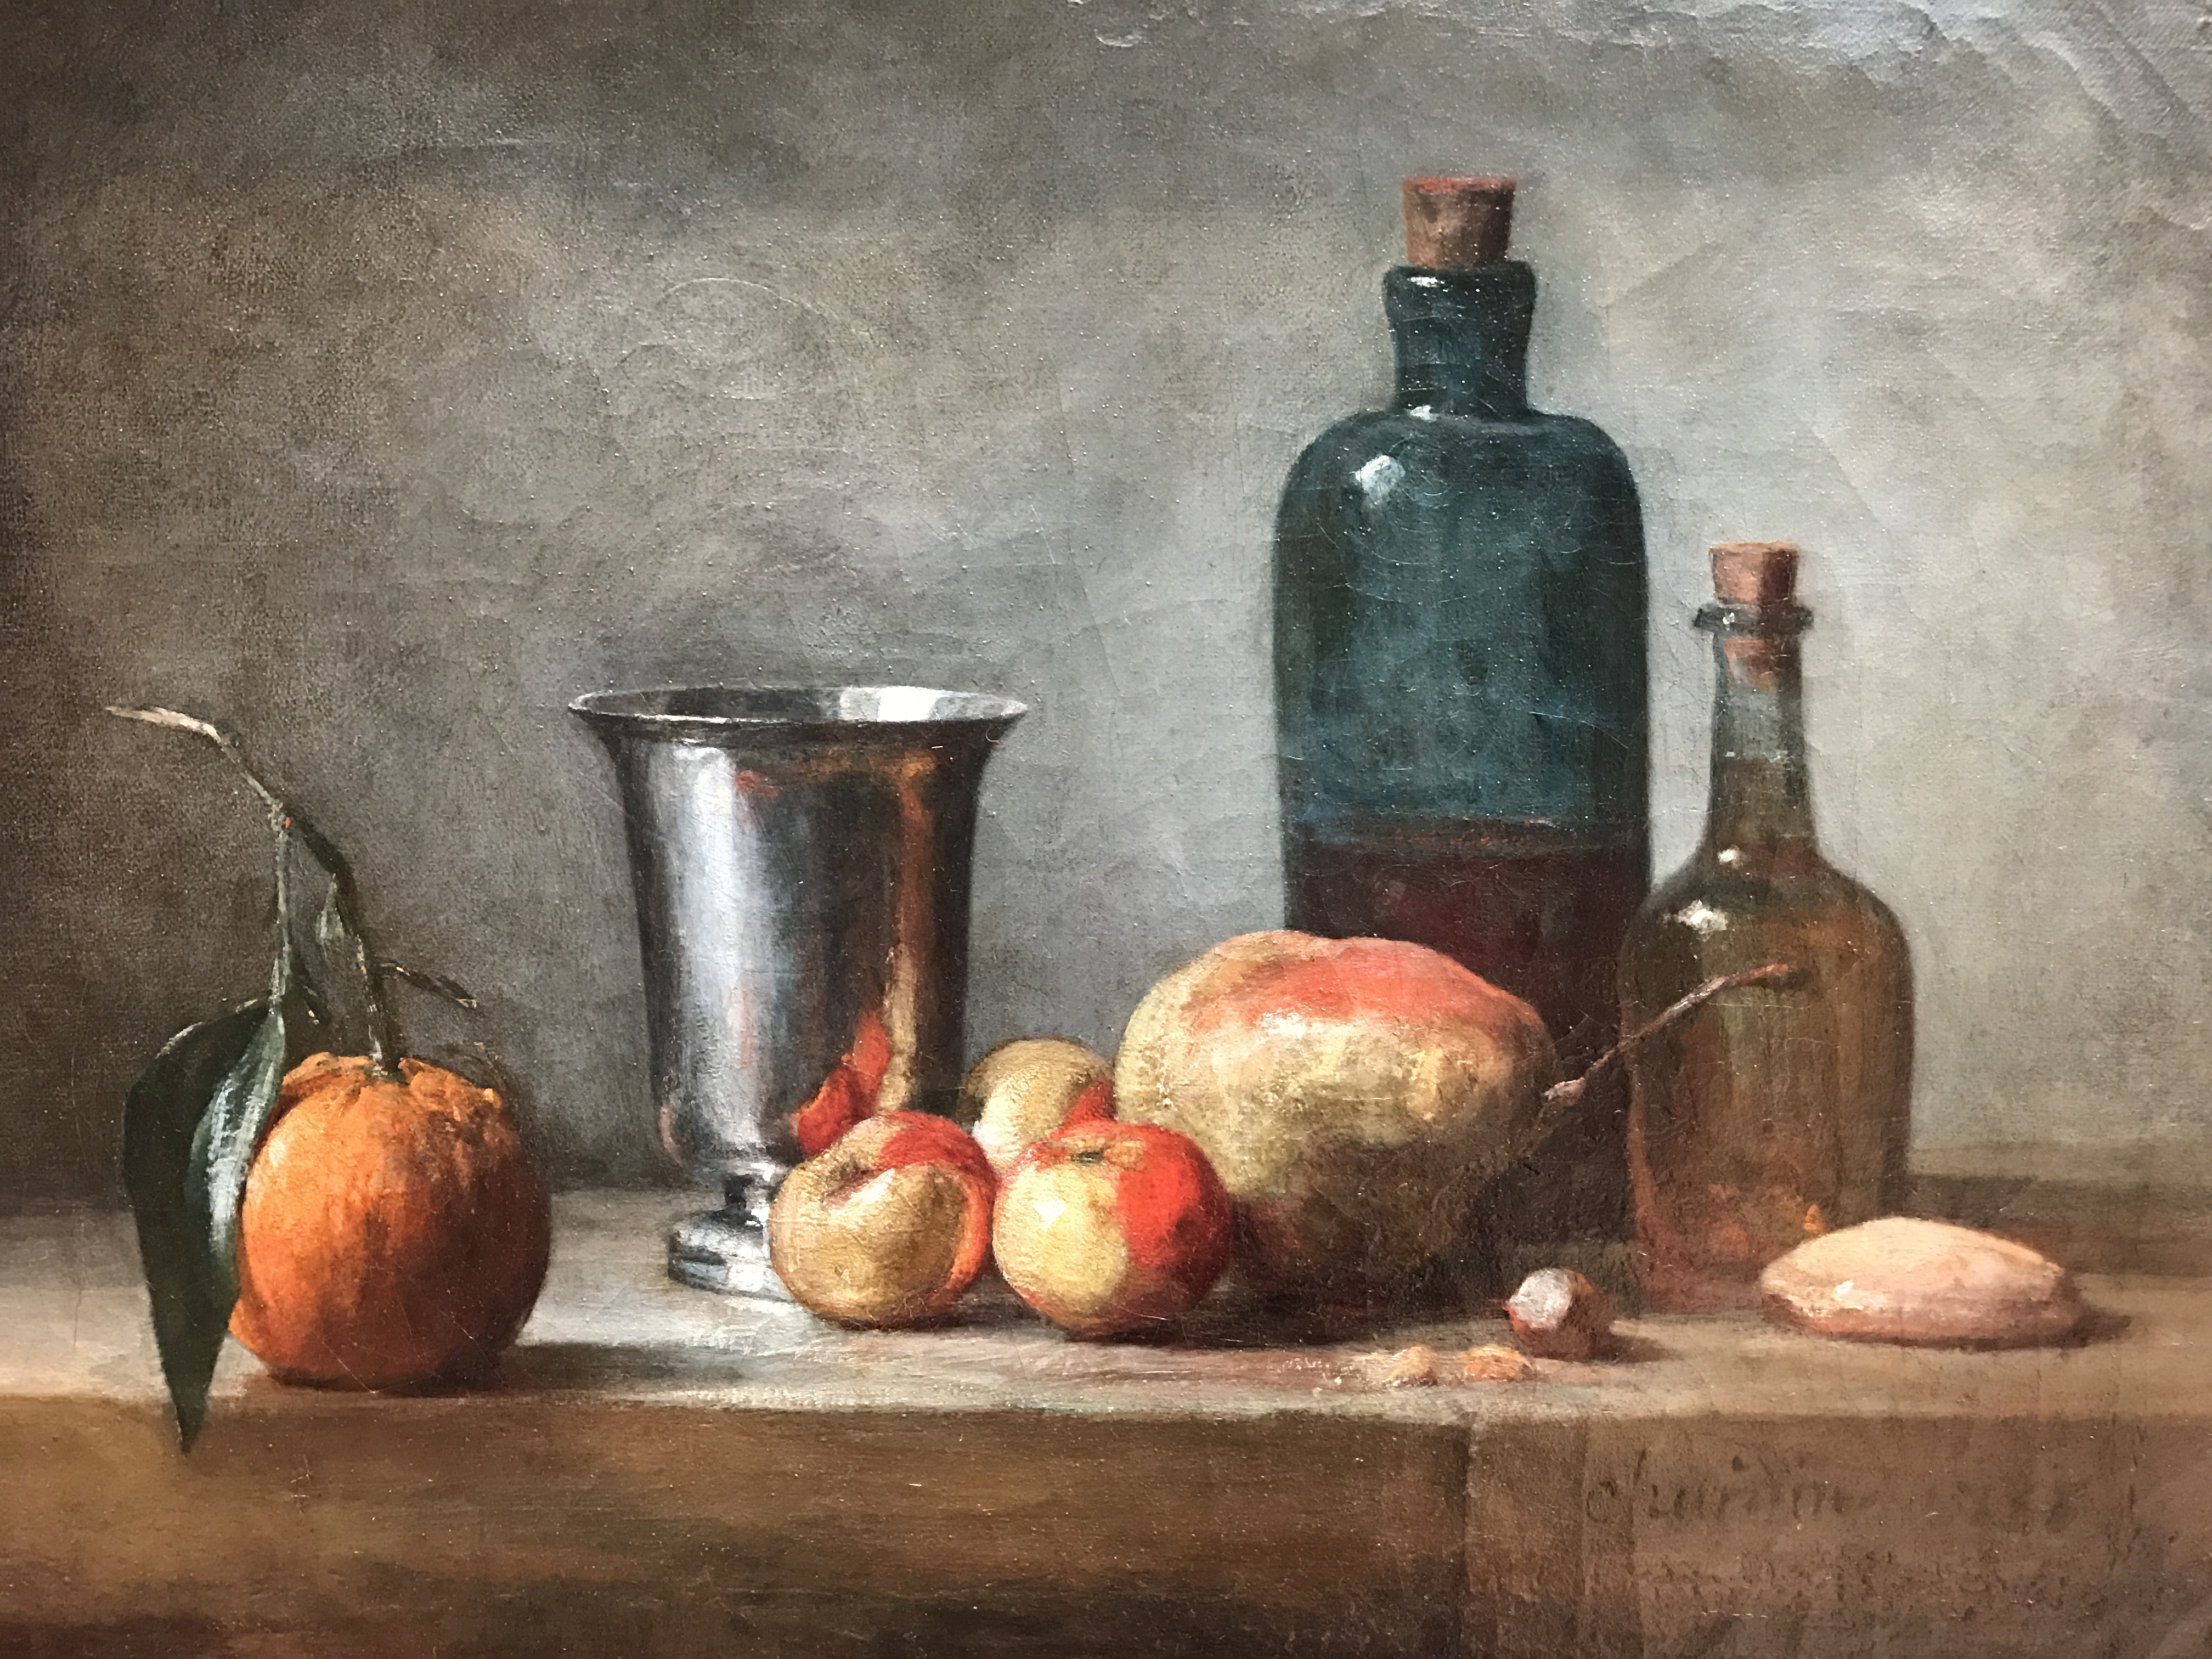 Seville Orange, Silver Goblet, Lady Apples, Pear, and Two Bottles, by Jean Siméon Chardin, my photo